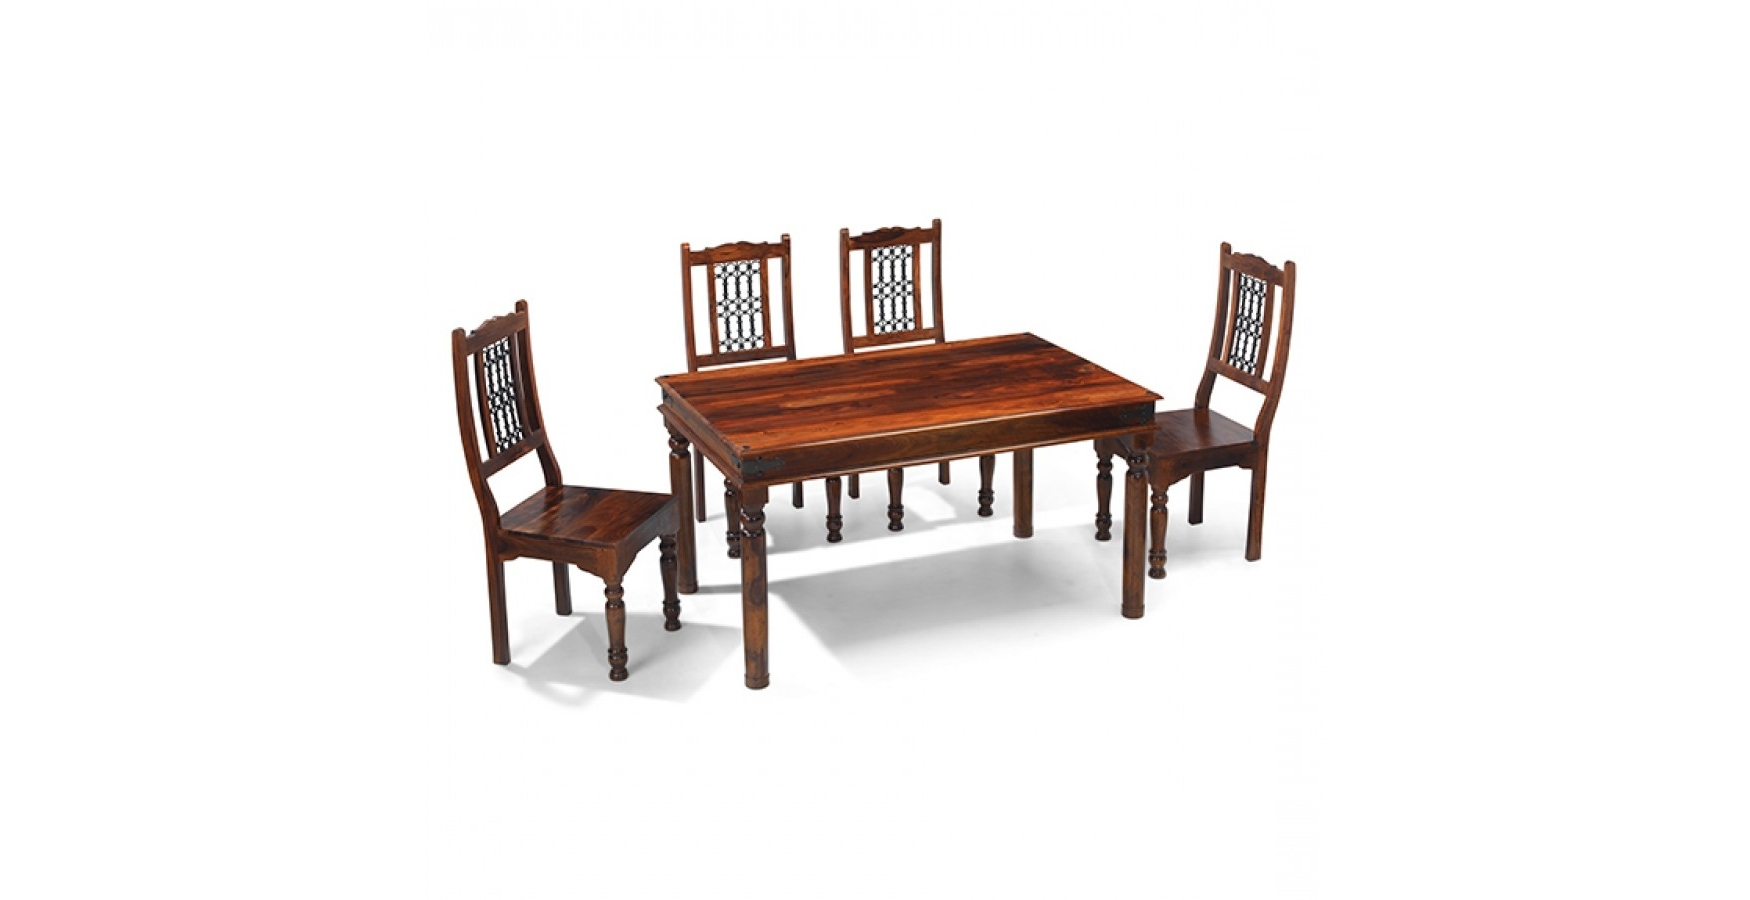 Jali Sheesham 120 Cm Thakat Dining Table And 4 Chairs – Lifestyle For Fashionable Sheesham Dining Tables And 4 Chairs (Gallery 16 of 25)